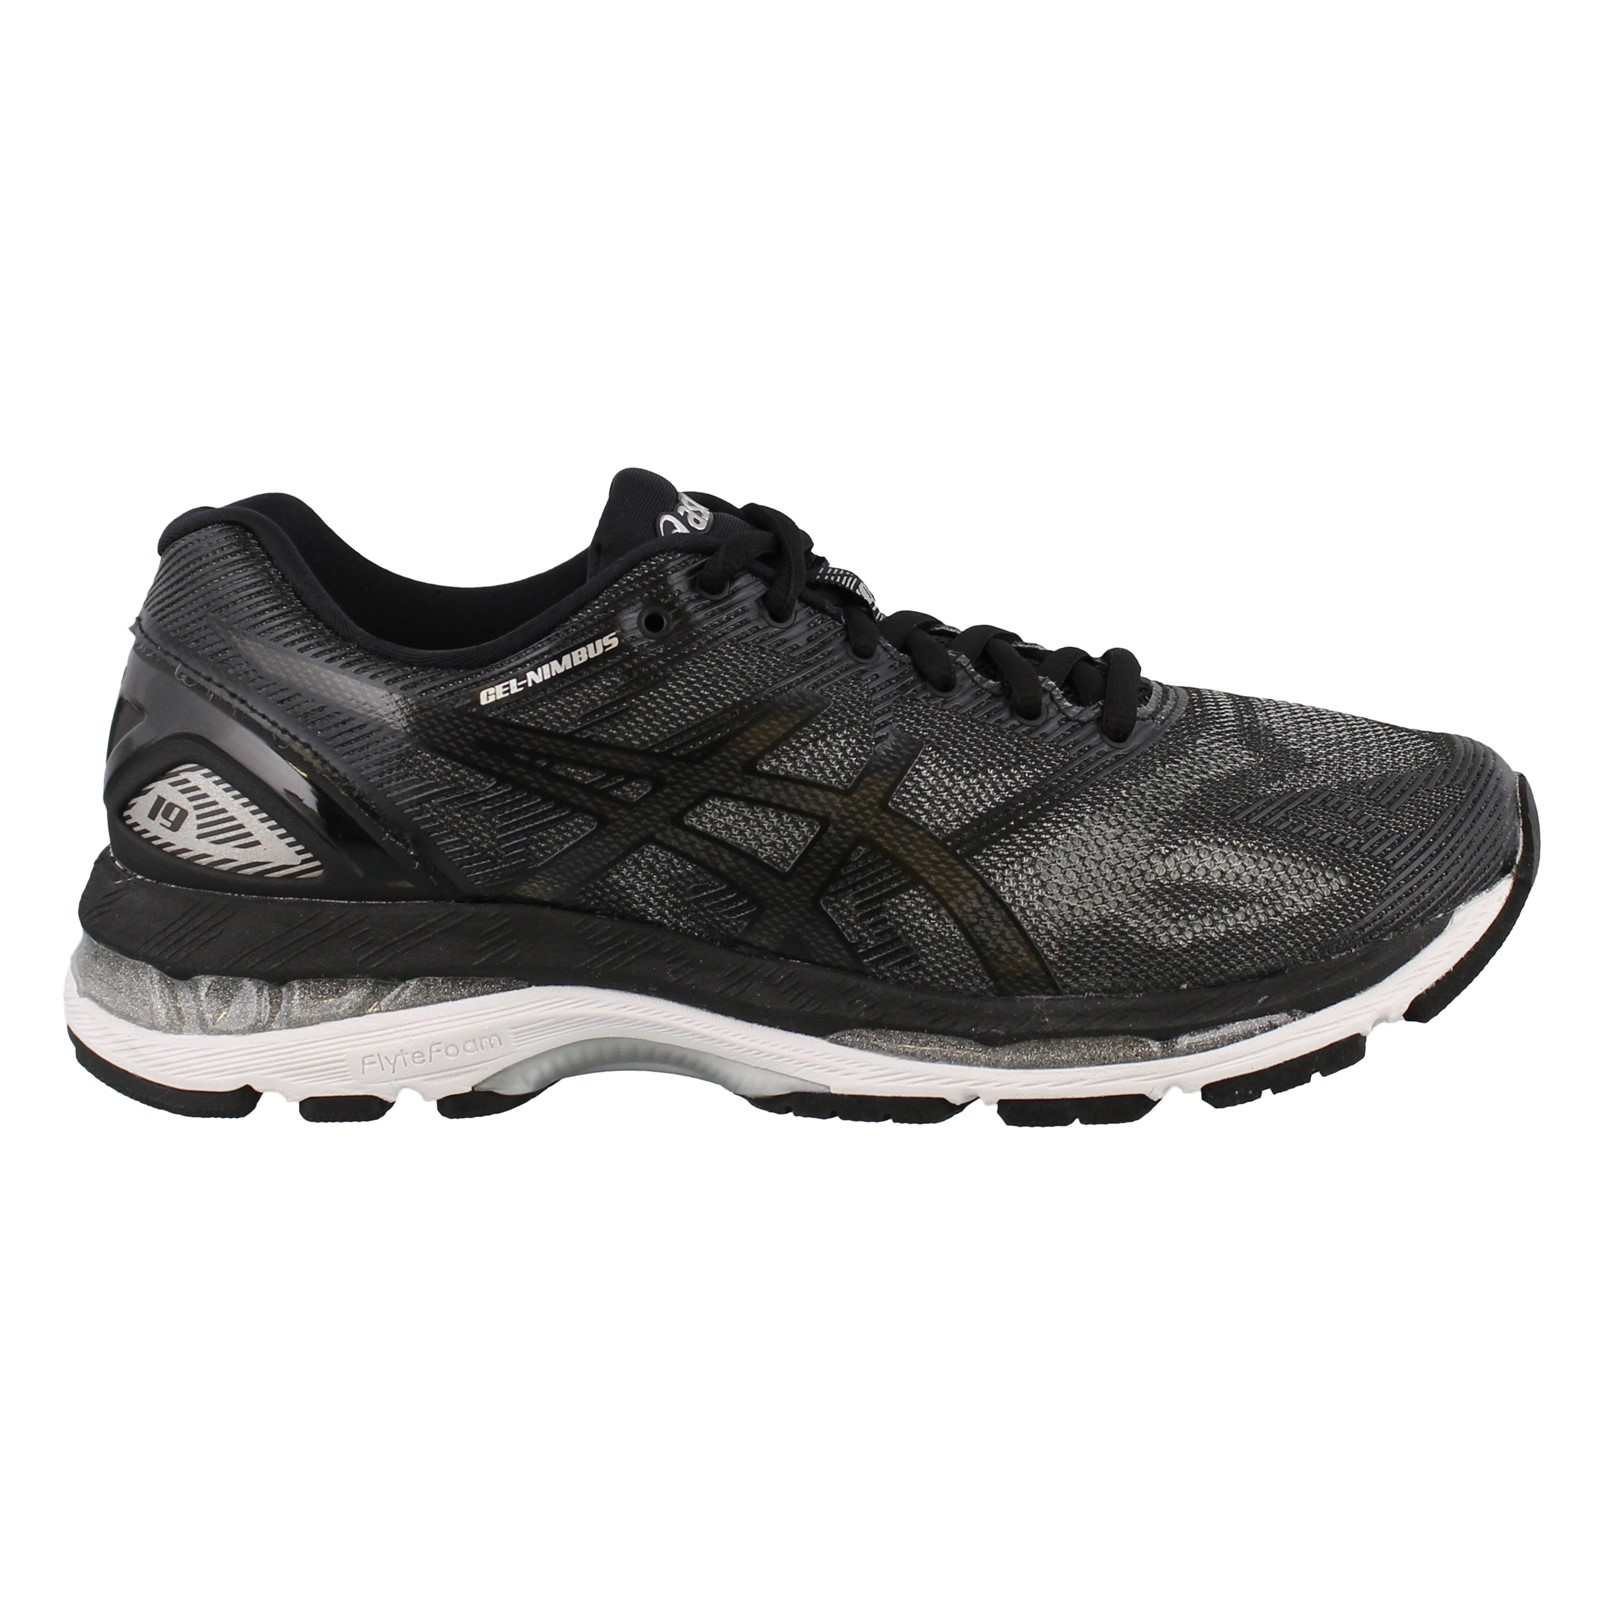 differently 0f783 e4240 Women's Asics, Gel Nimbus 19 Running Sneakers